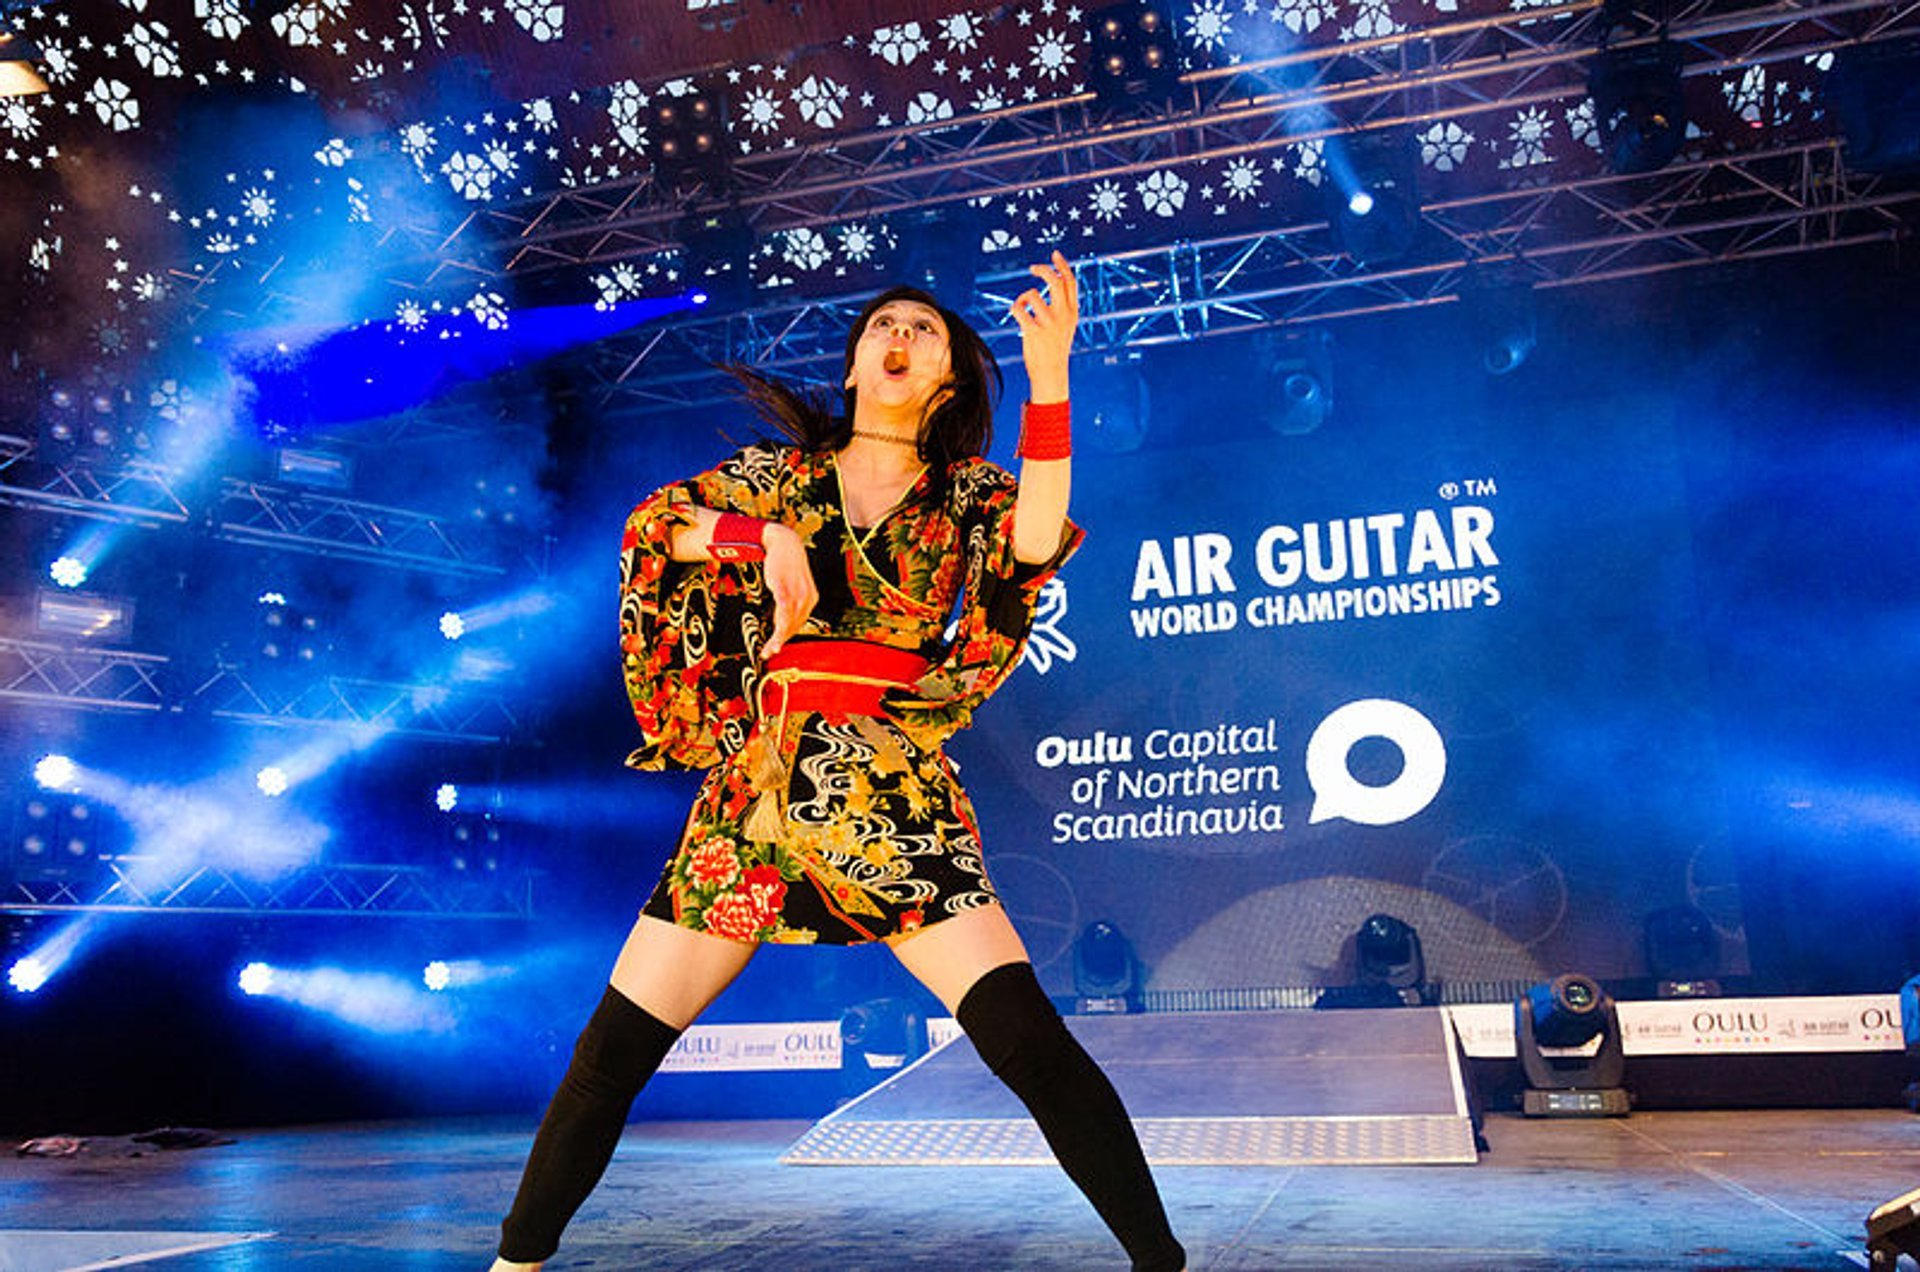 World Air Guitar Championship in Finland - Best Season 2020